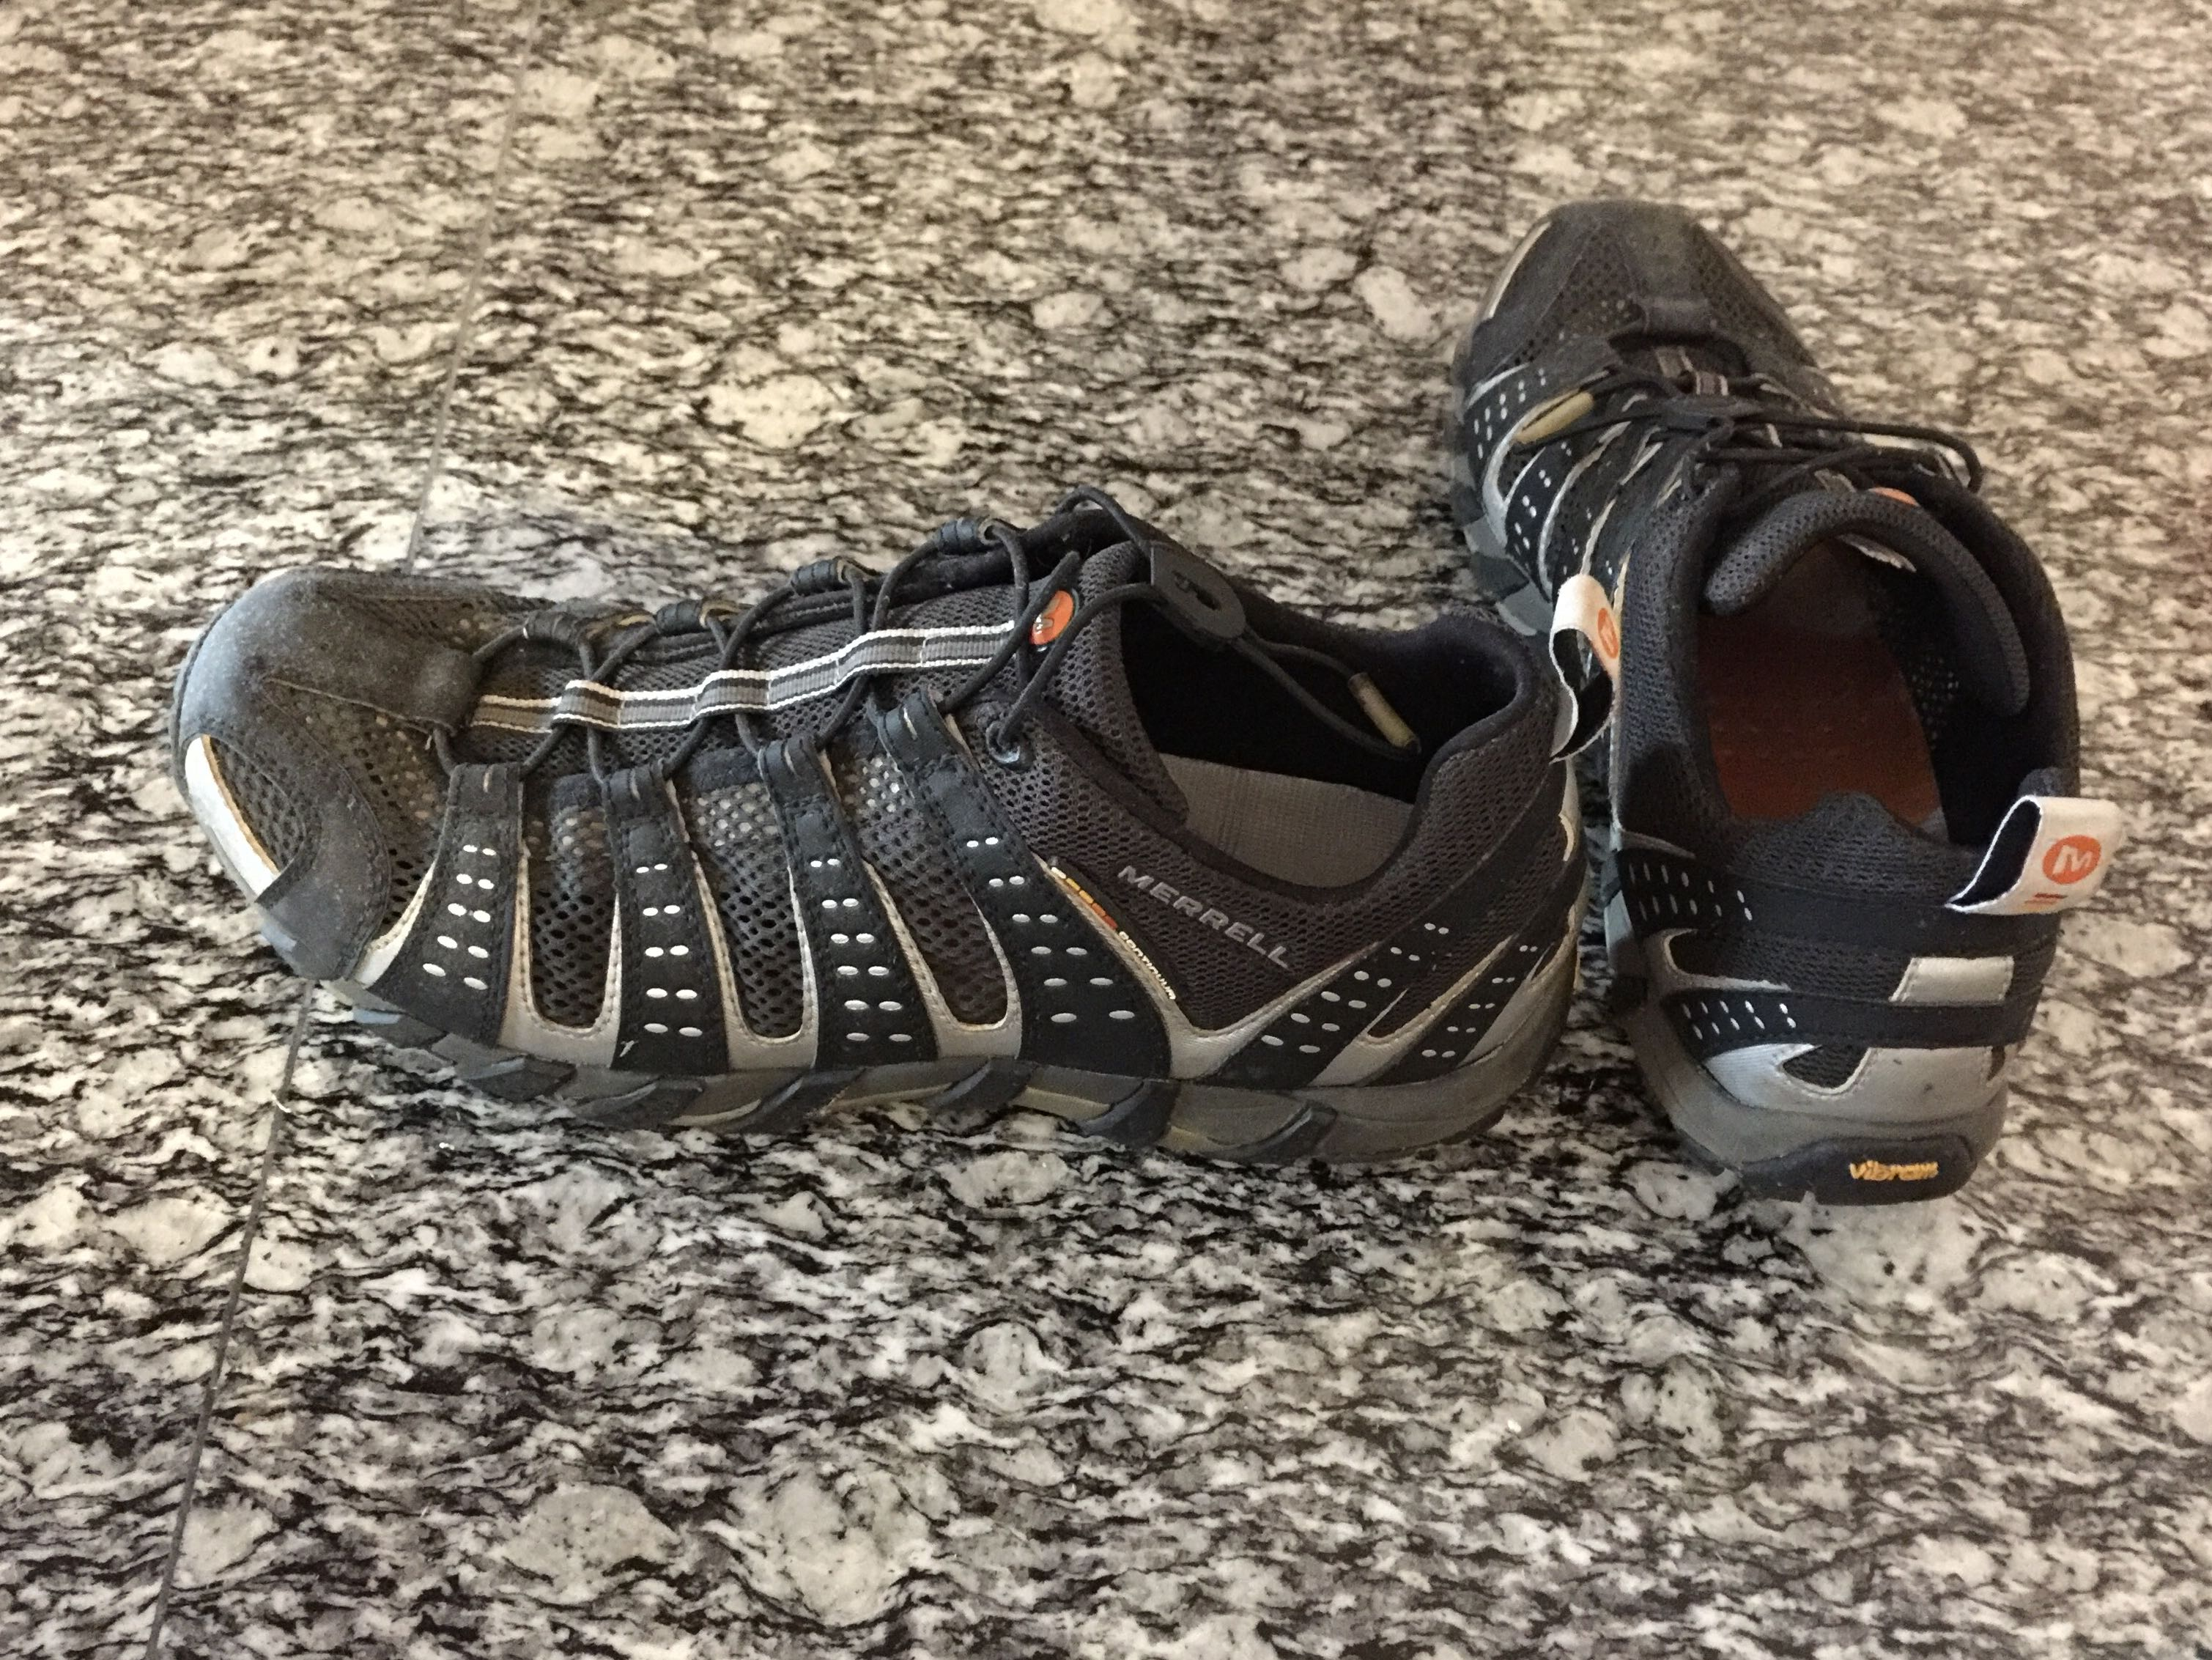 merrell shoes size 13 01